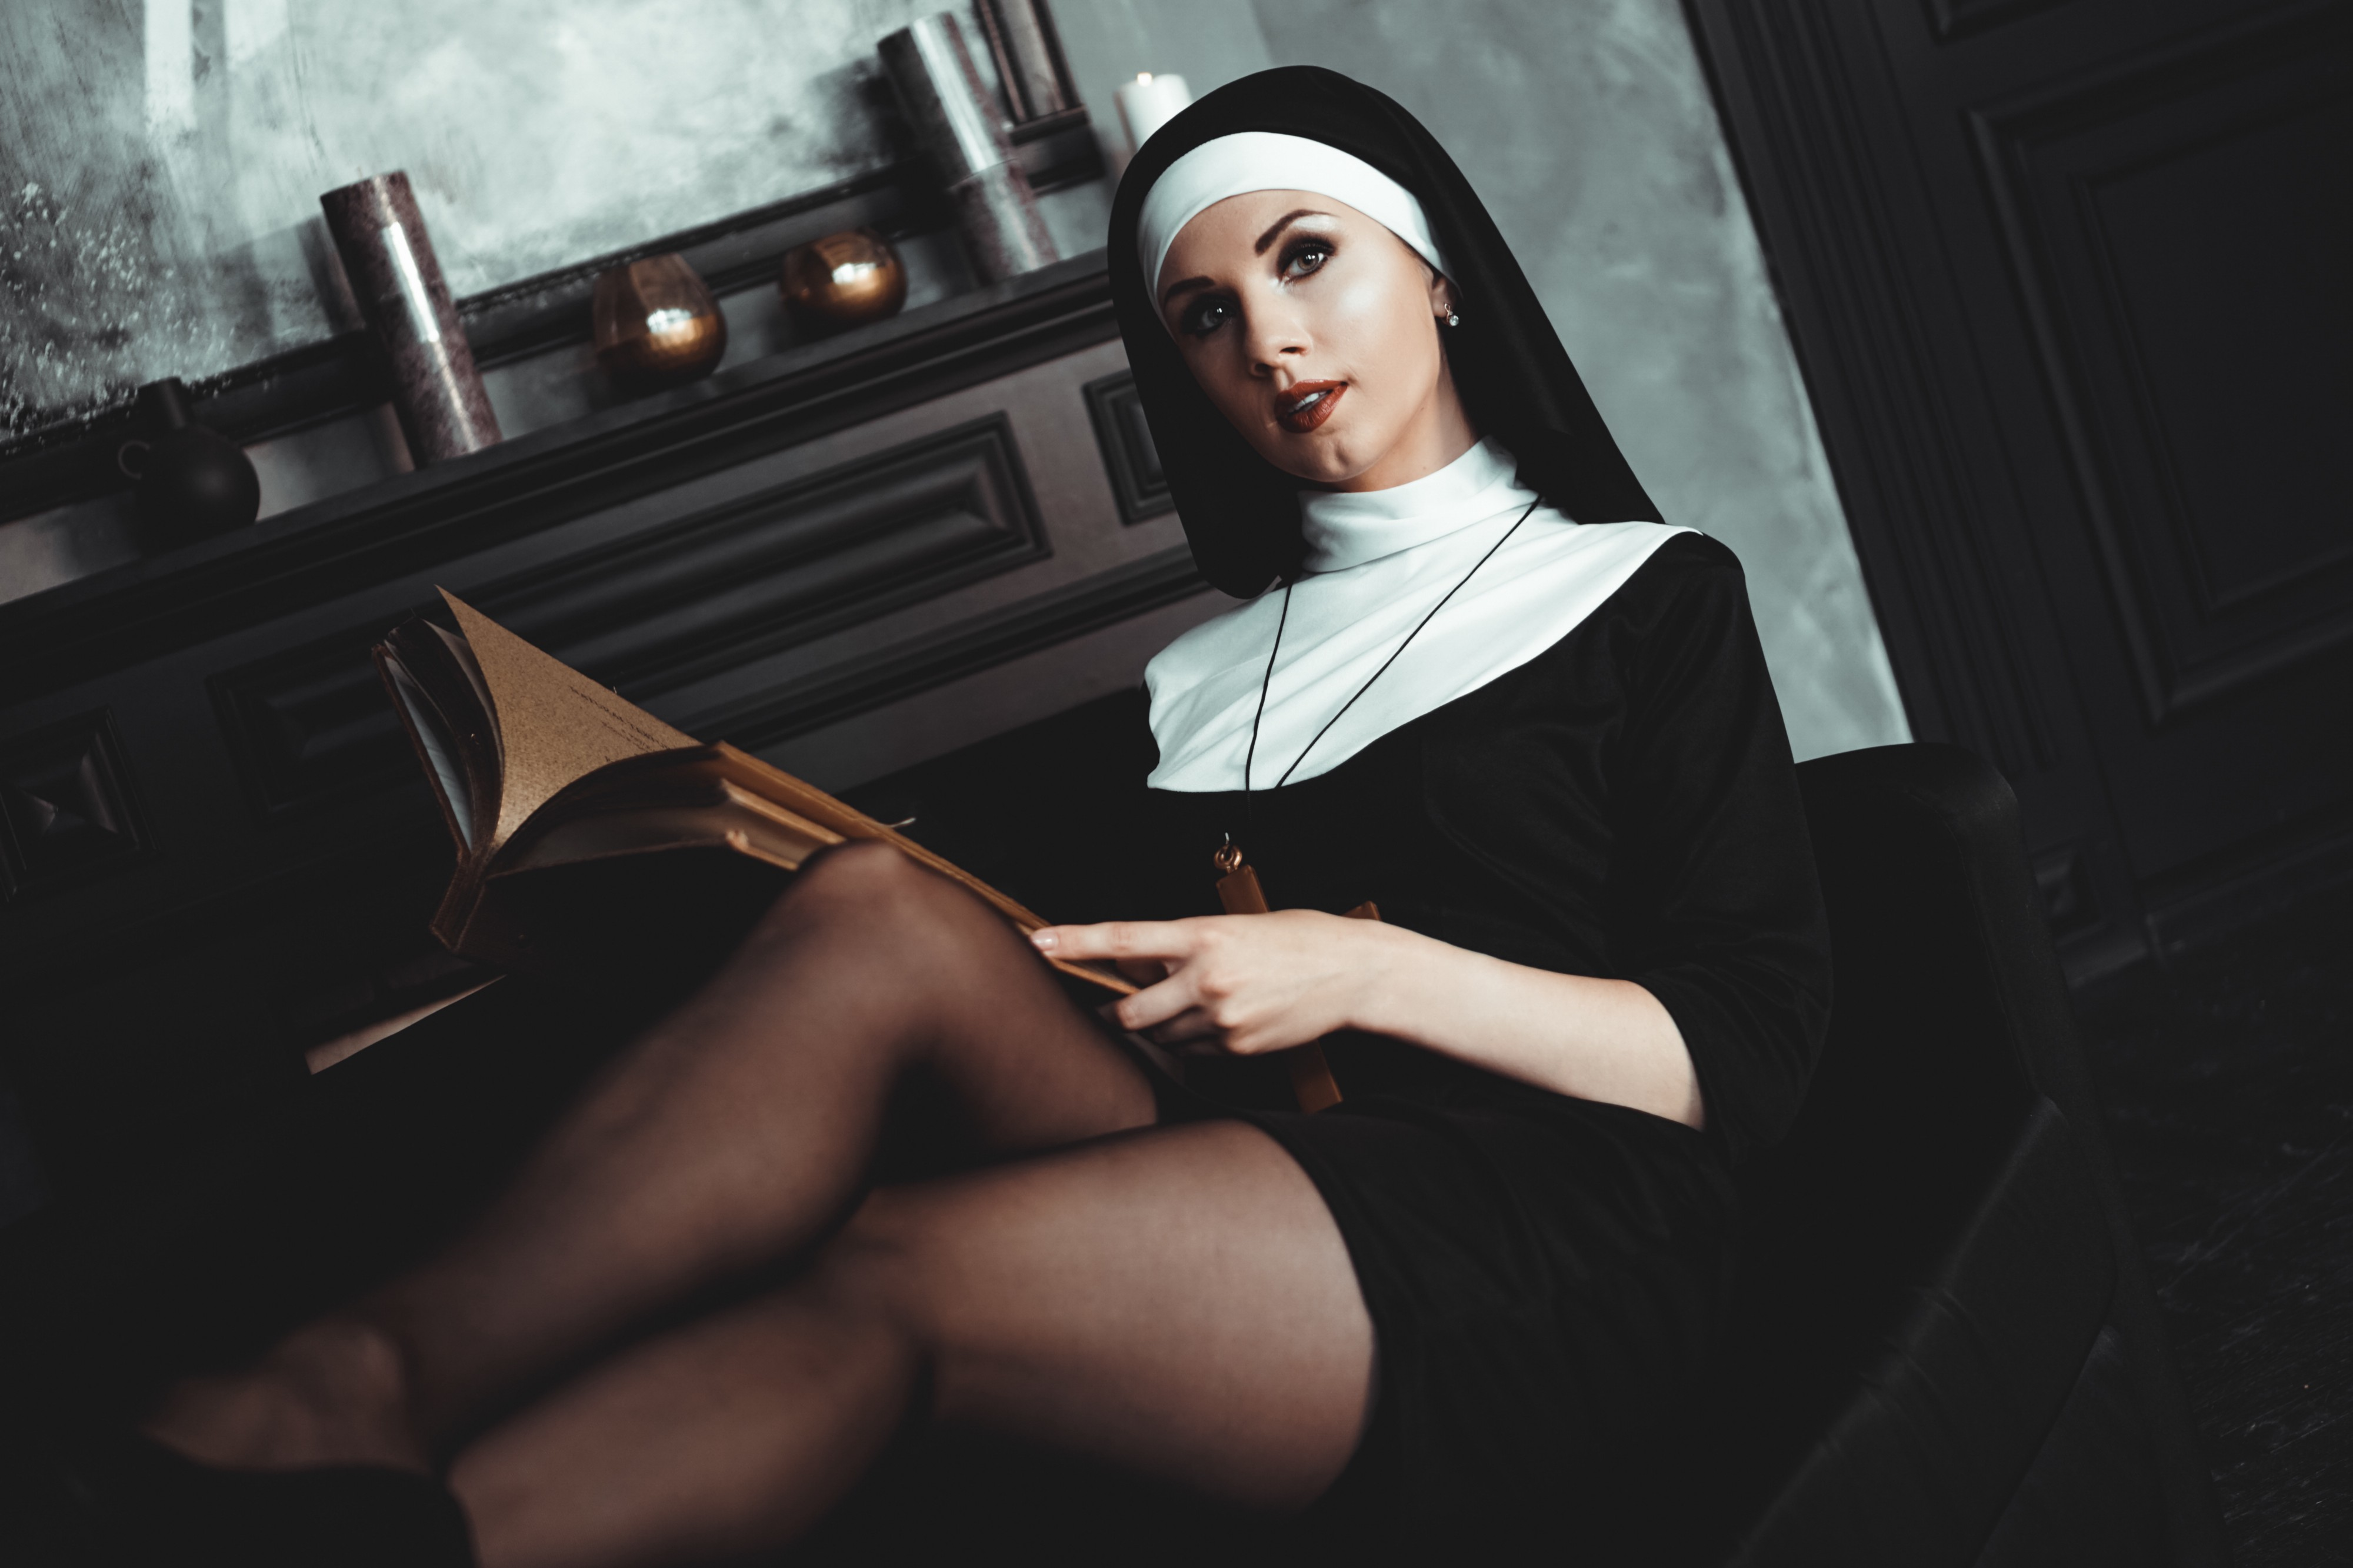 Attractive woman in nun's clothing and black tights, reading a book, lying back on a couch.